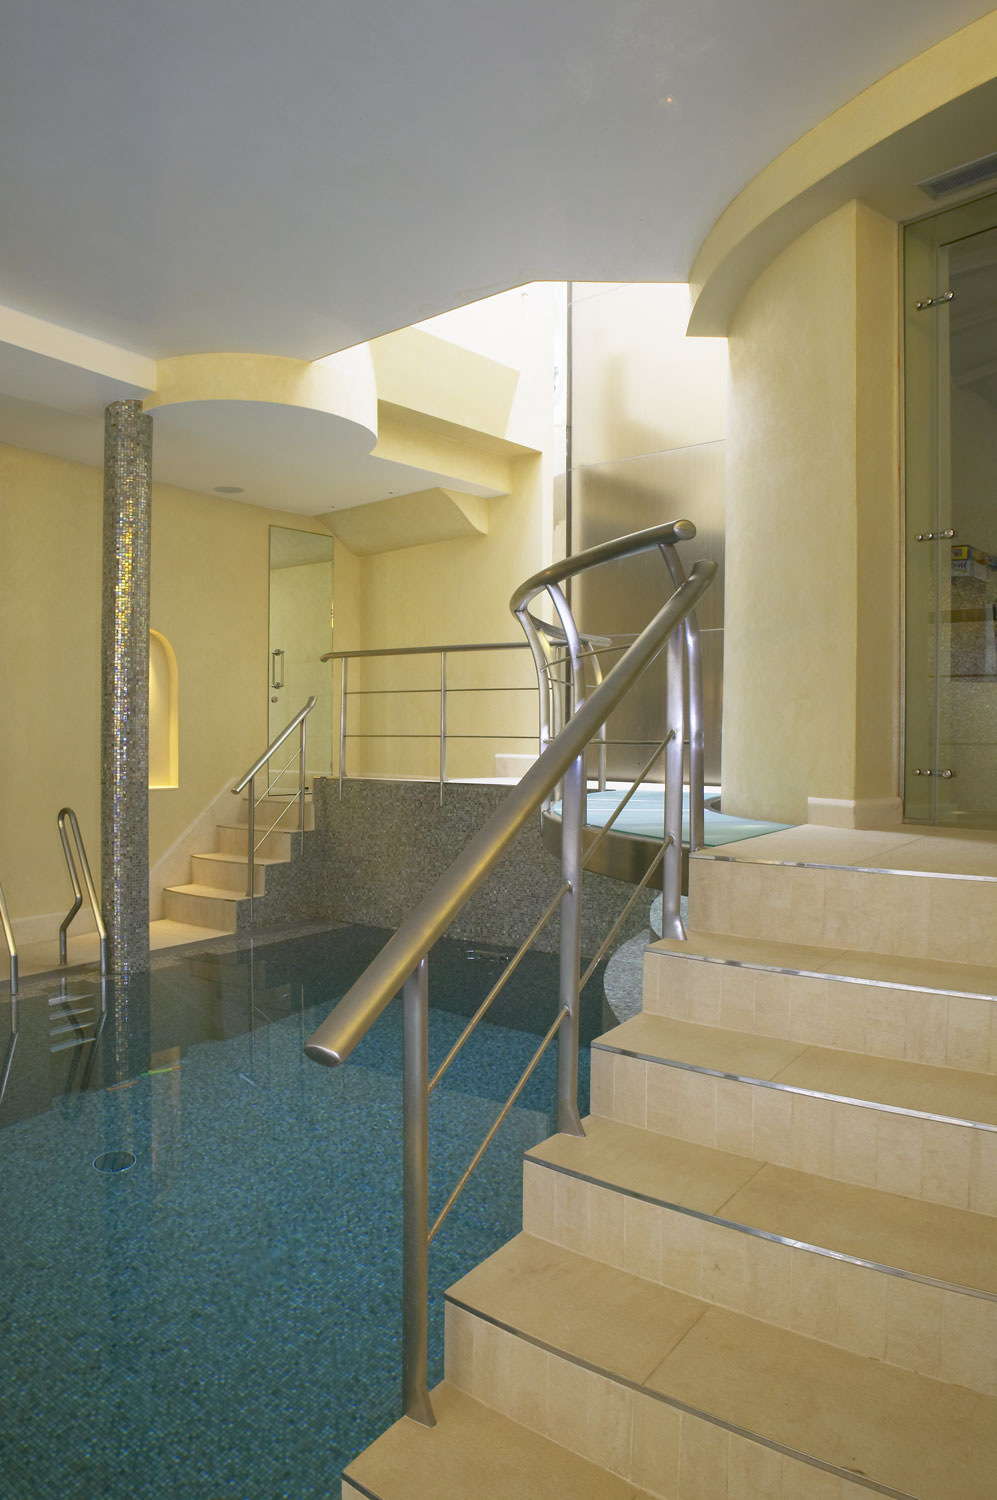 Whitestone House basement pool and sauna | Residential Photographer UK